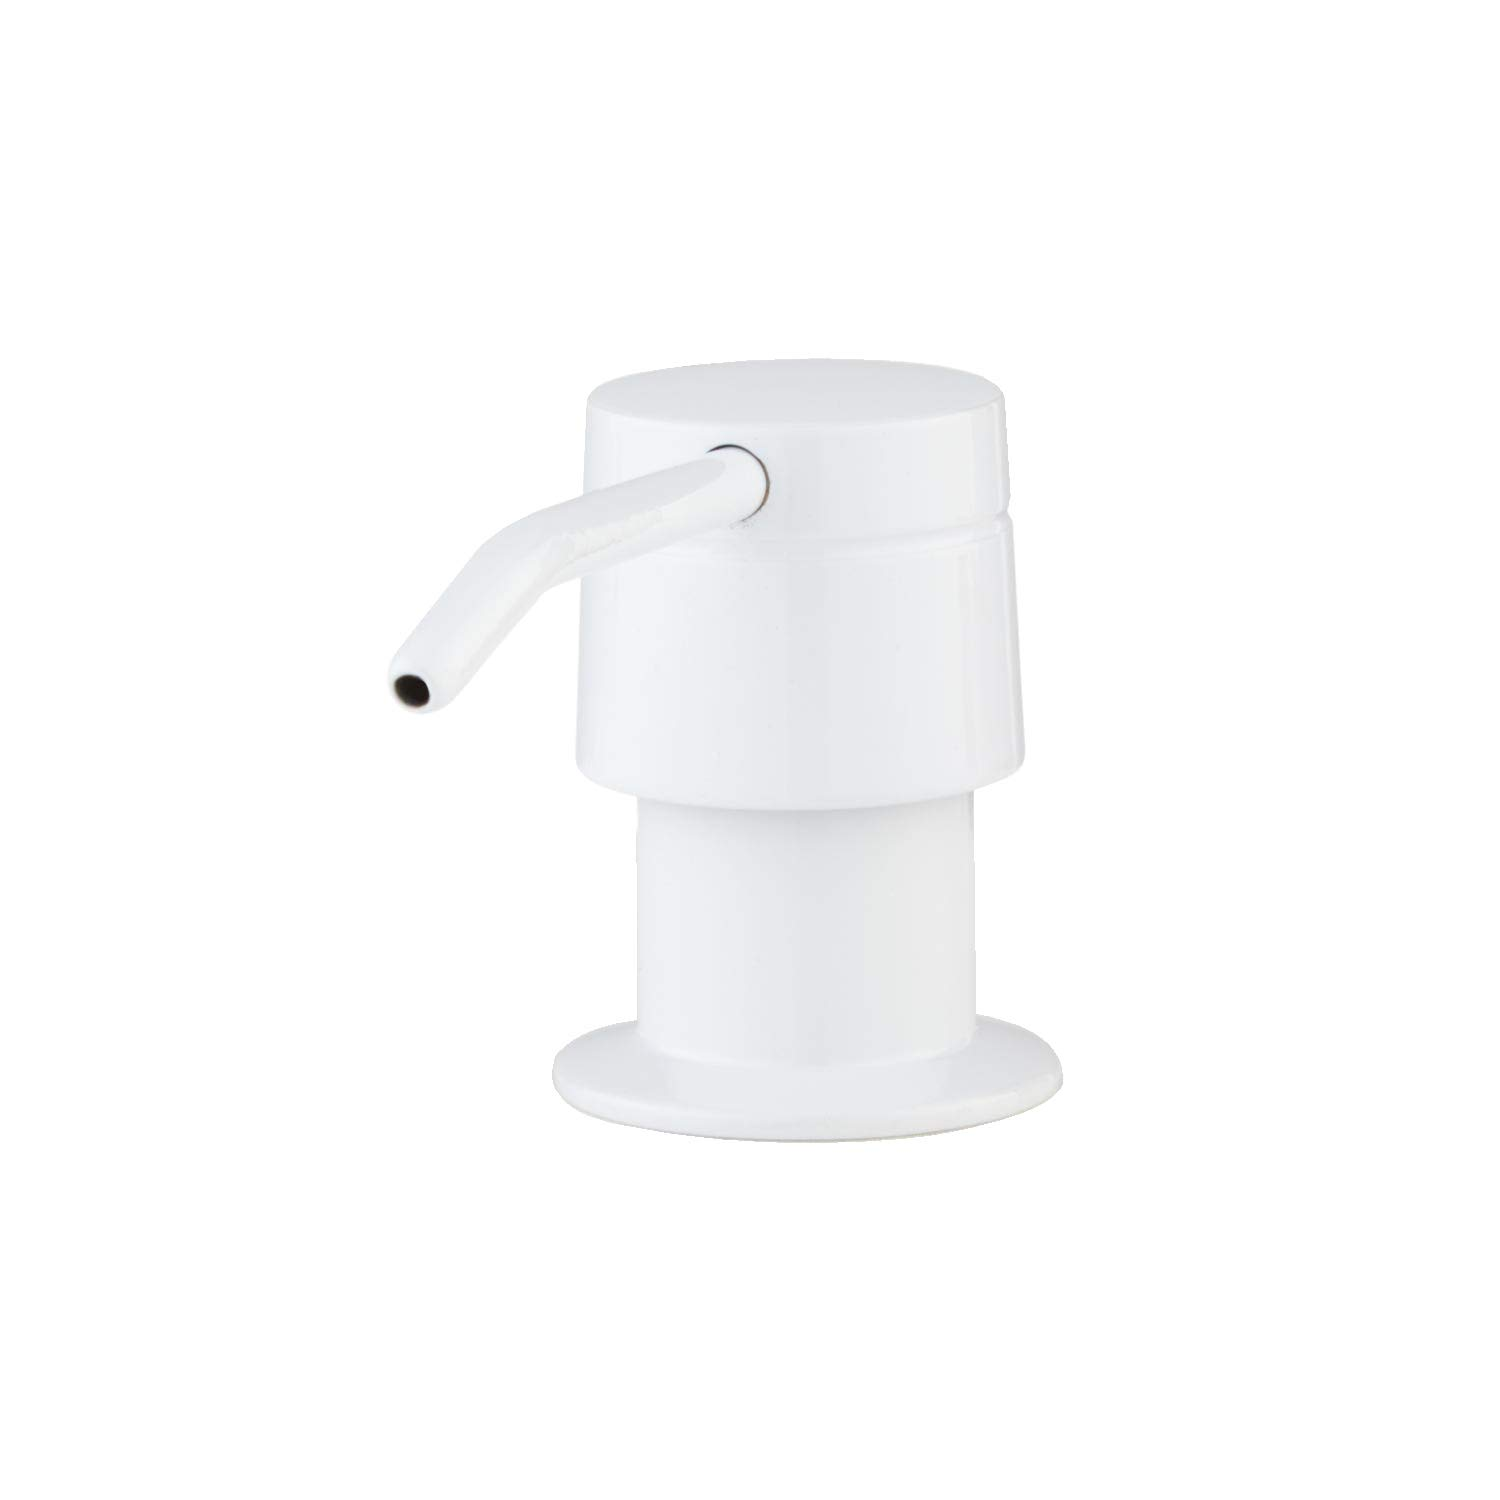 Naiture Brass Soap Or Lotion Dispenser in White Finish